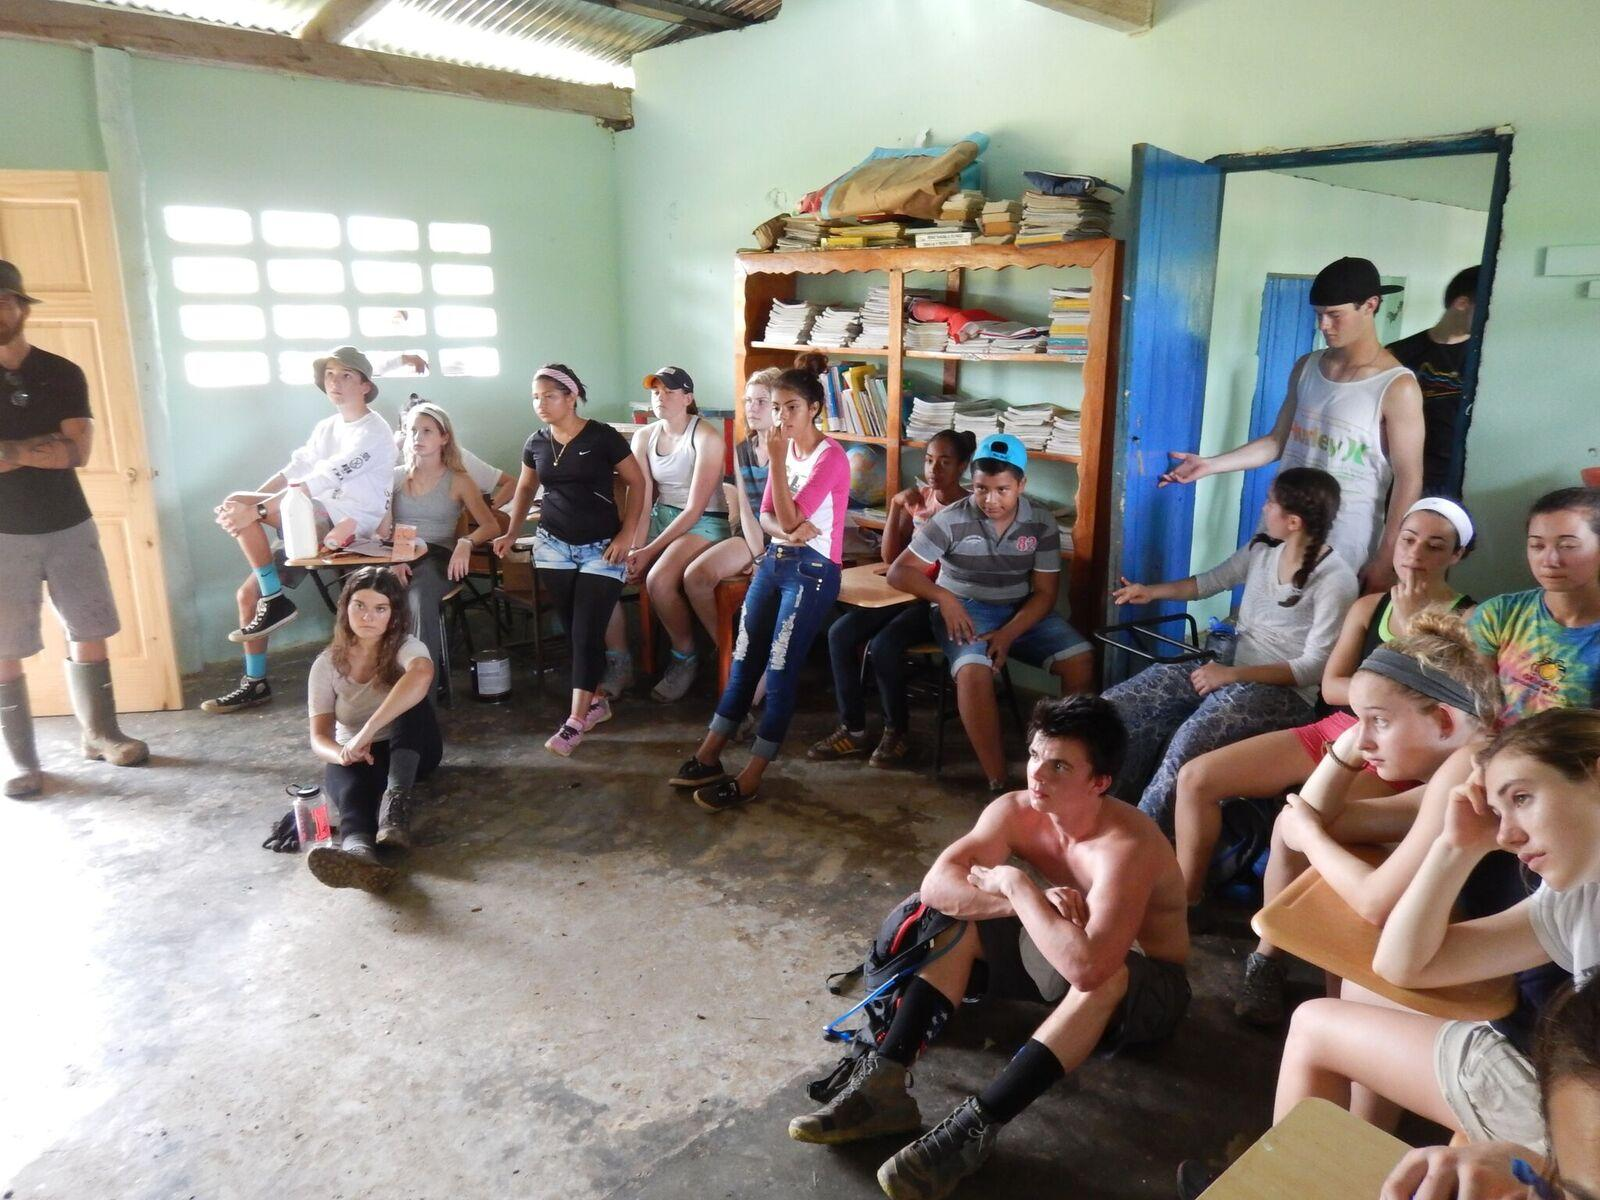 Zadoff and other volunteers visit a school in Panama